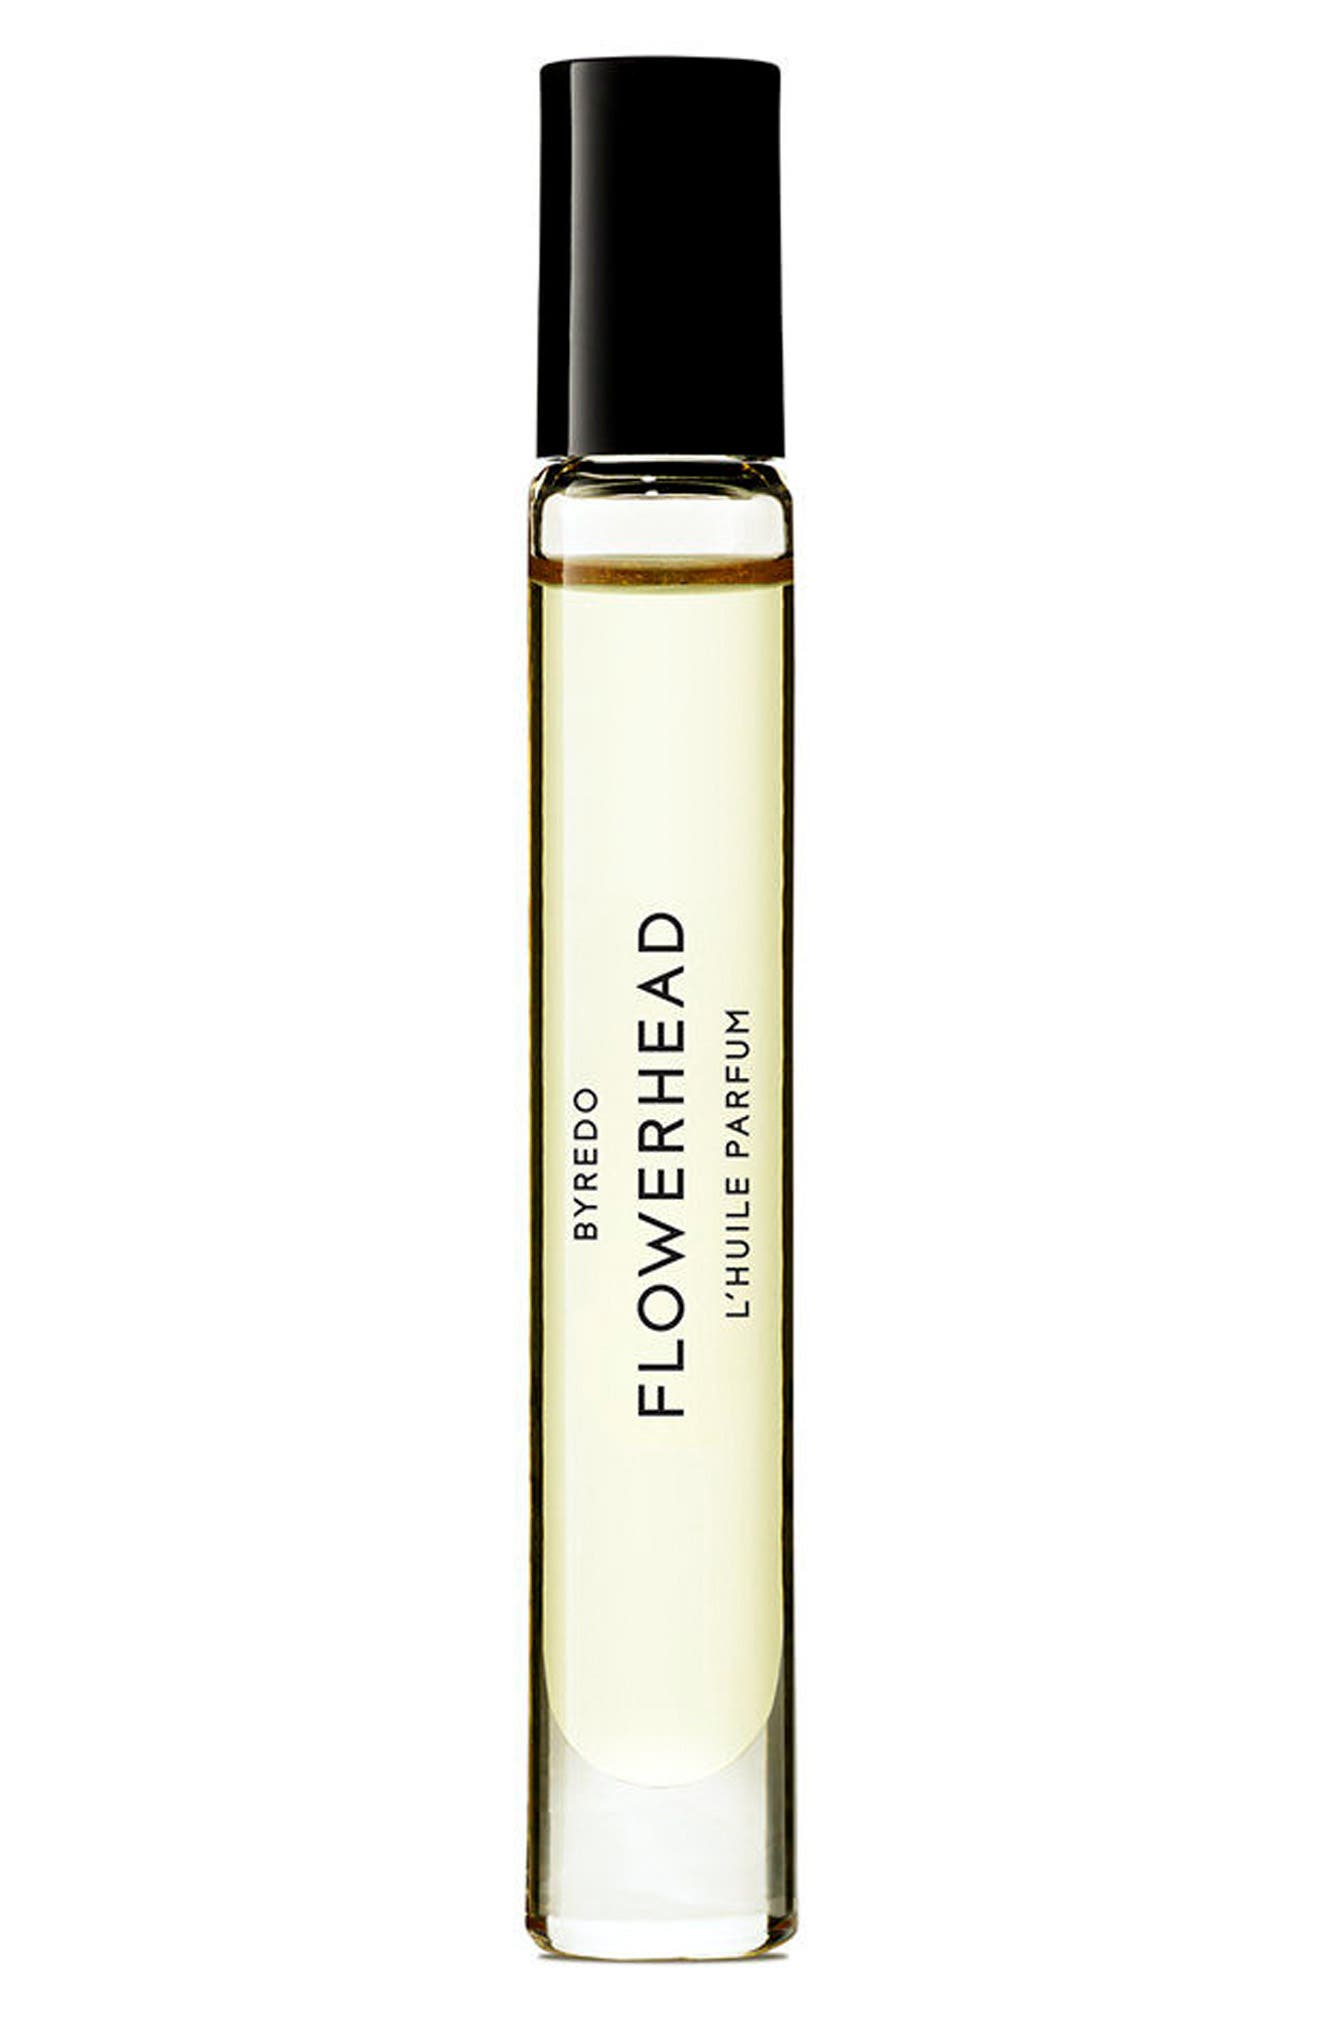 Flowerhead Eau de Parfum Rollerball,                             Main thumbnail 1, color,                             No Color